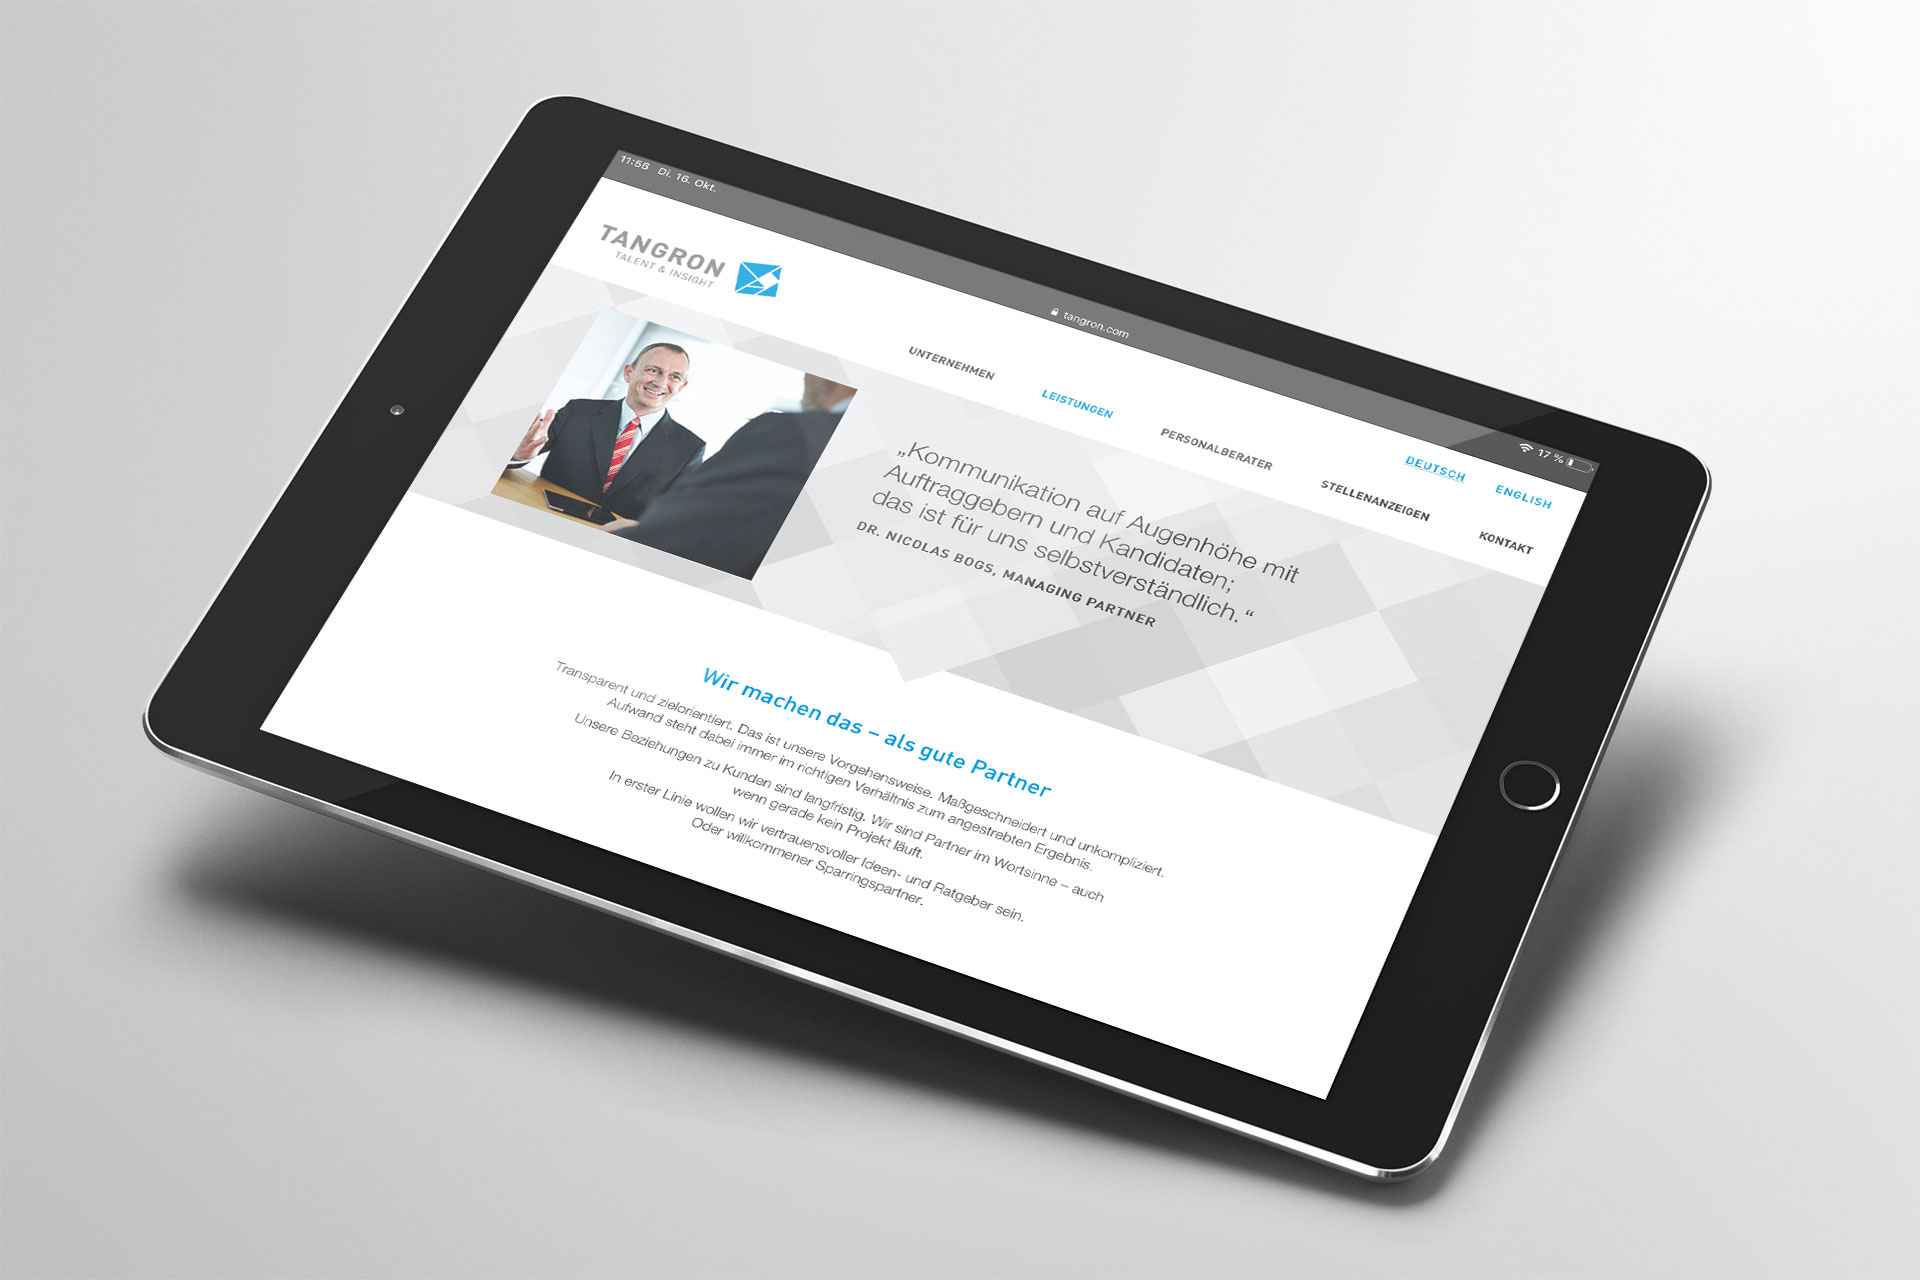 Webdesign im Corporate Design von Tangron